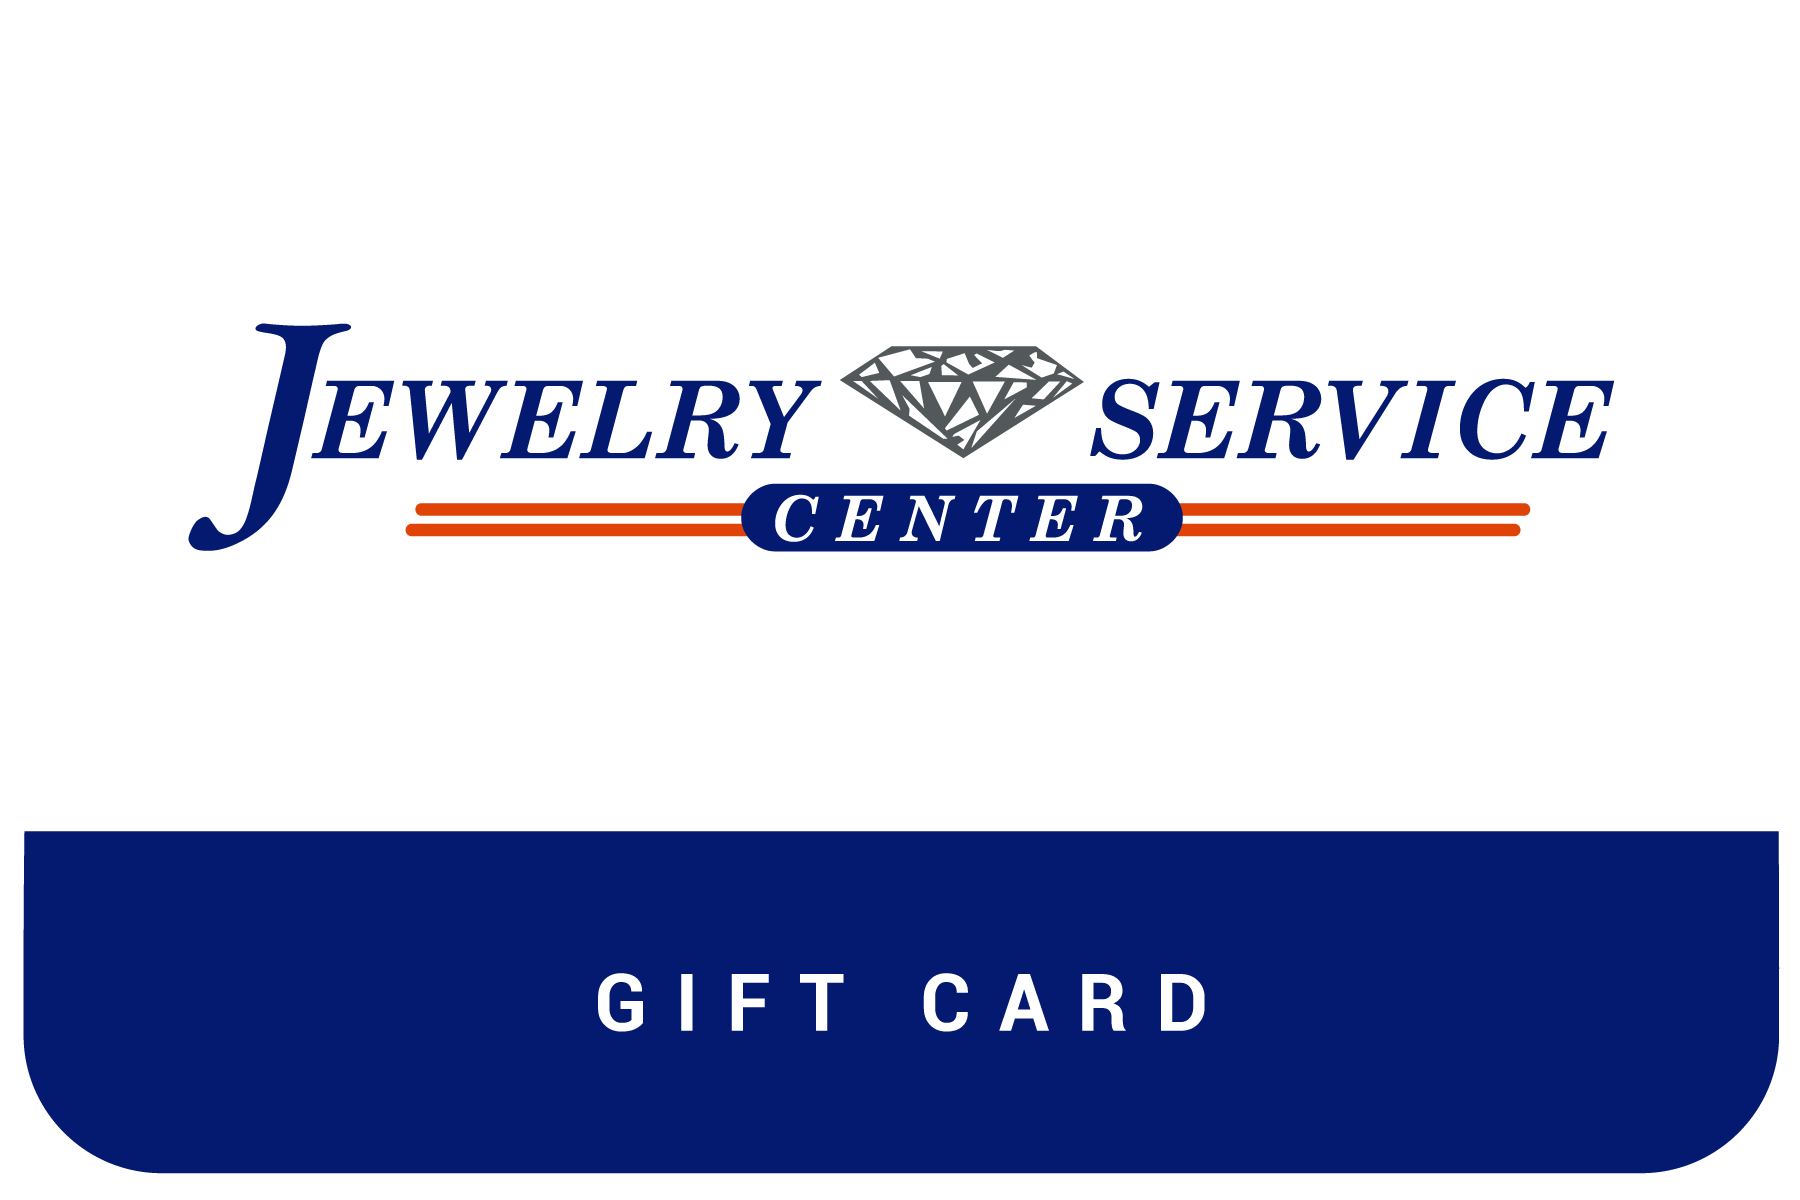 Jewelry Service Center $100 Gift Card